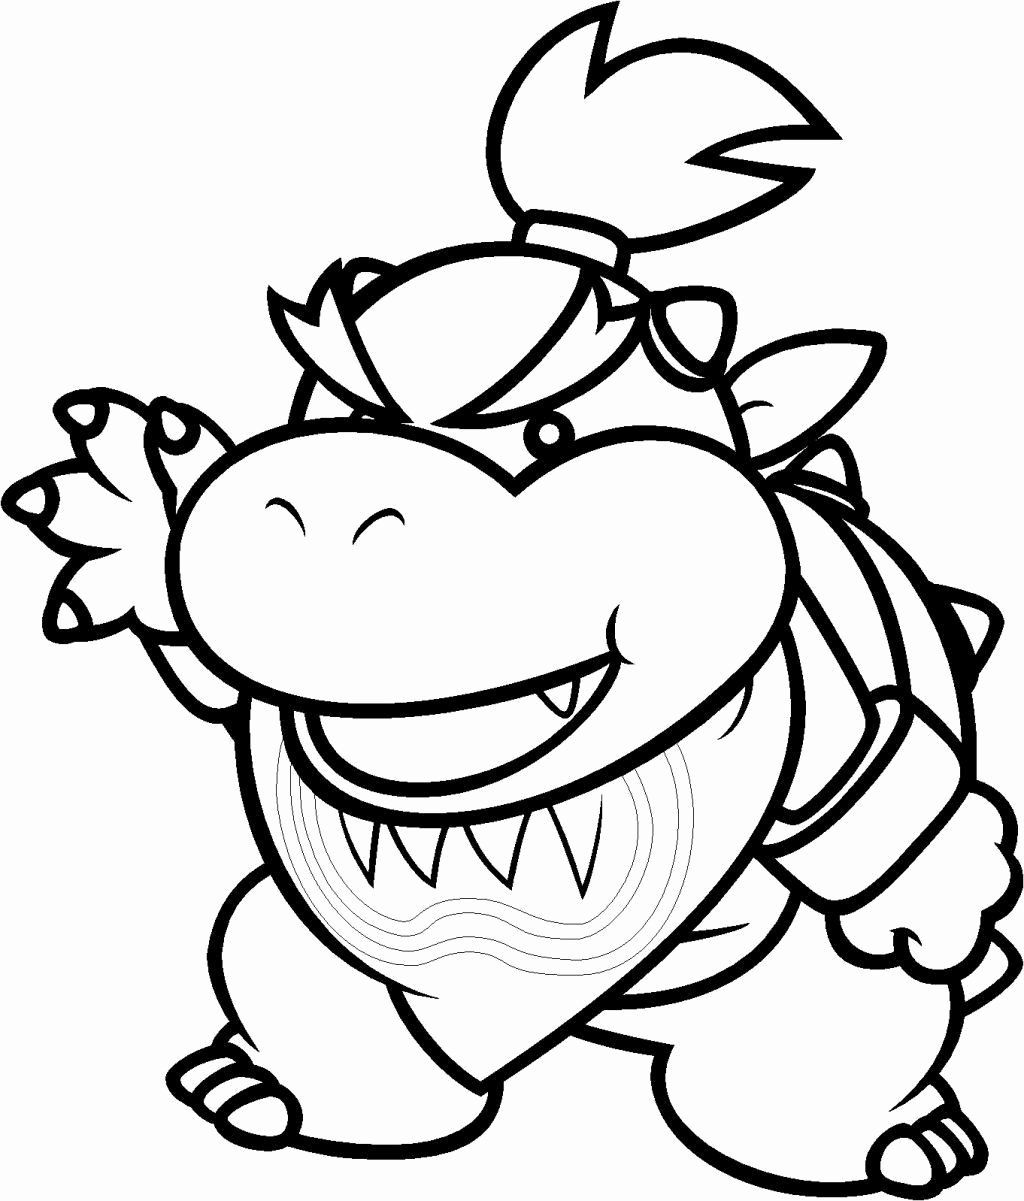 Coloring Of Vegetable In 2020 Super Mario Coloring Pages Mario